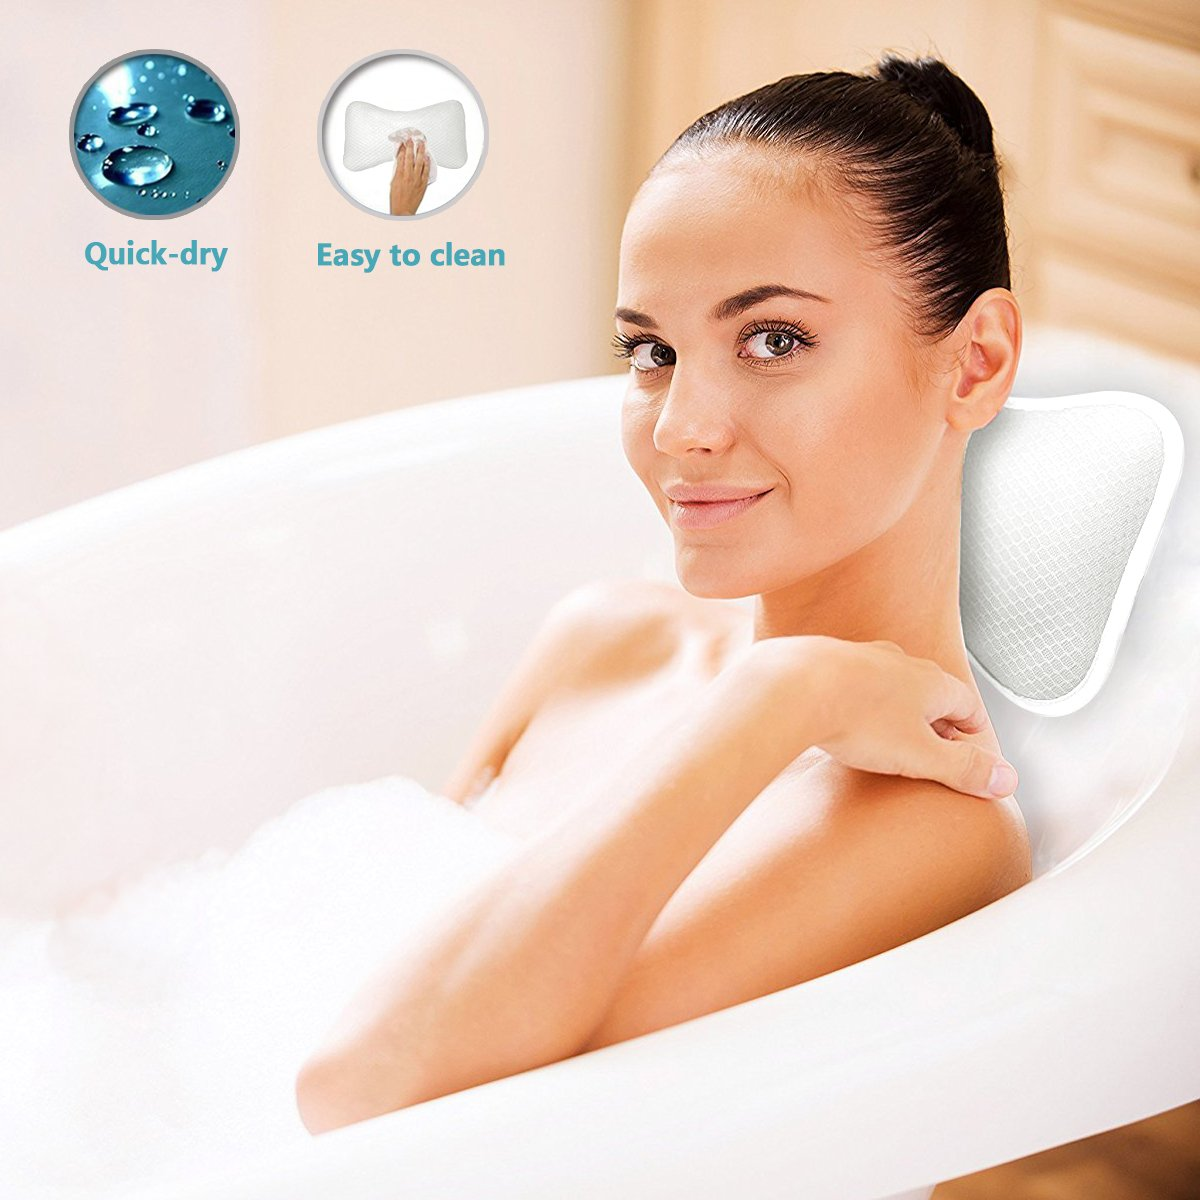 Quick Drying /& Anti Bacterial White Spa Bath Pillow for Neck Shoulder Support with Suction Cups Non Slip Bathtub Pillow for Comfort Relaxation